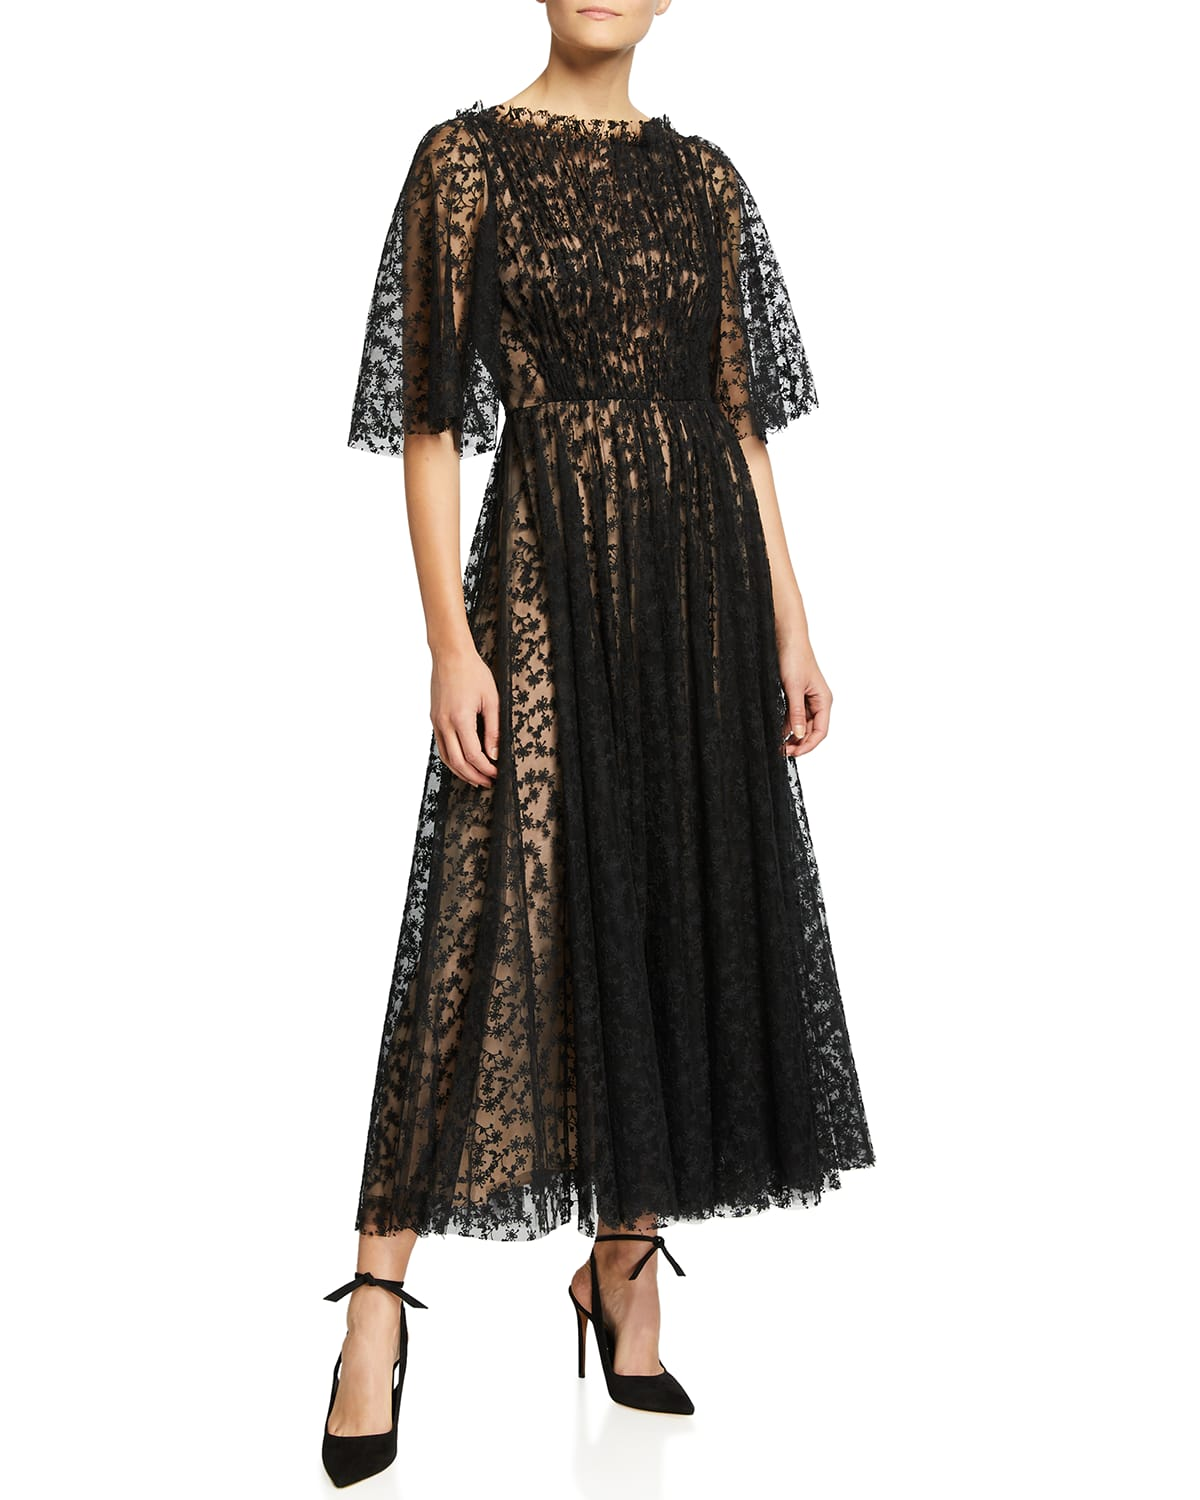 Tossed Floral-Embroidered Tulle Midi Dress